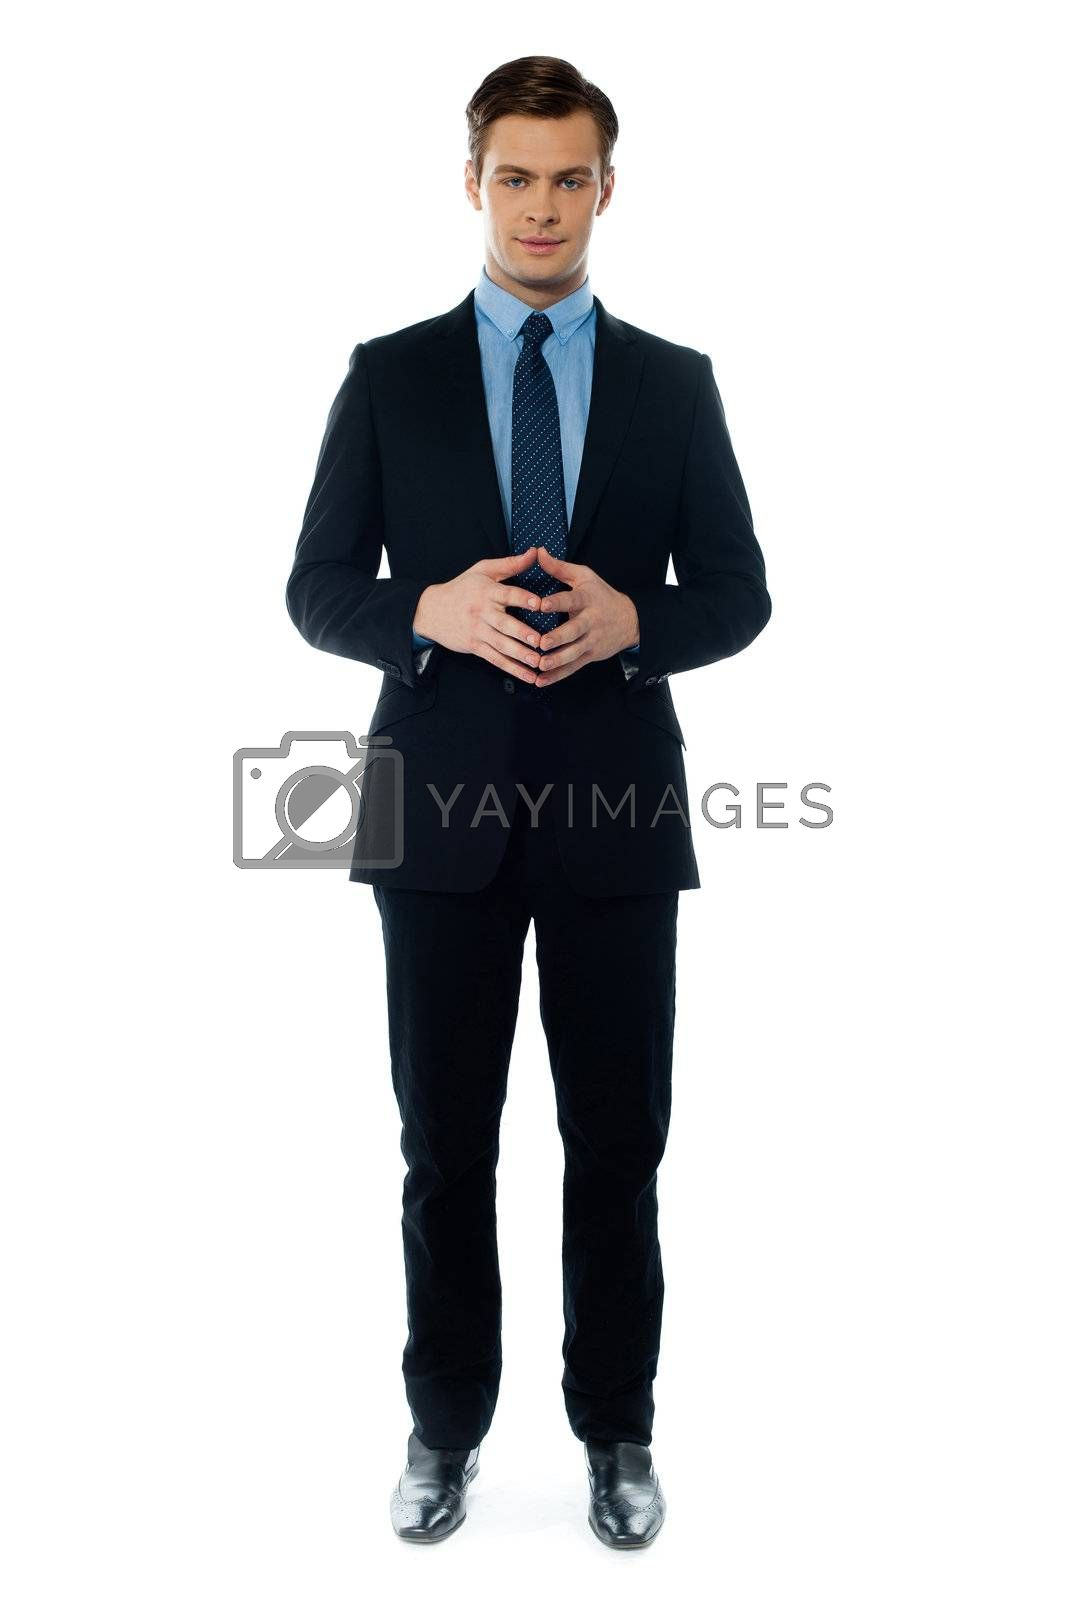 Confident executive standing in business suit isolated on white background